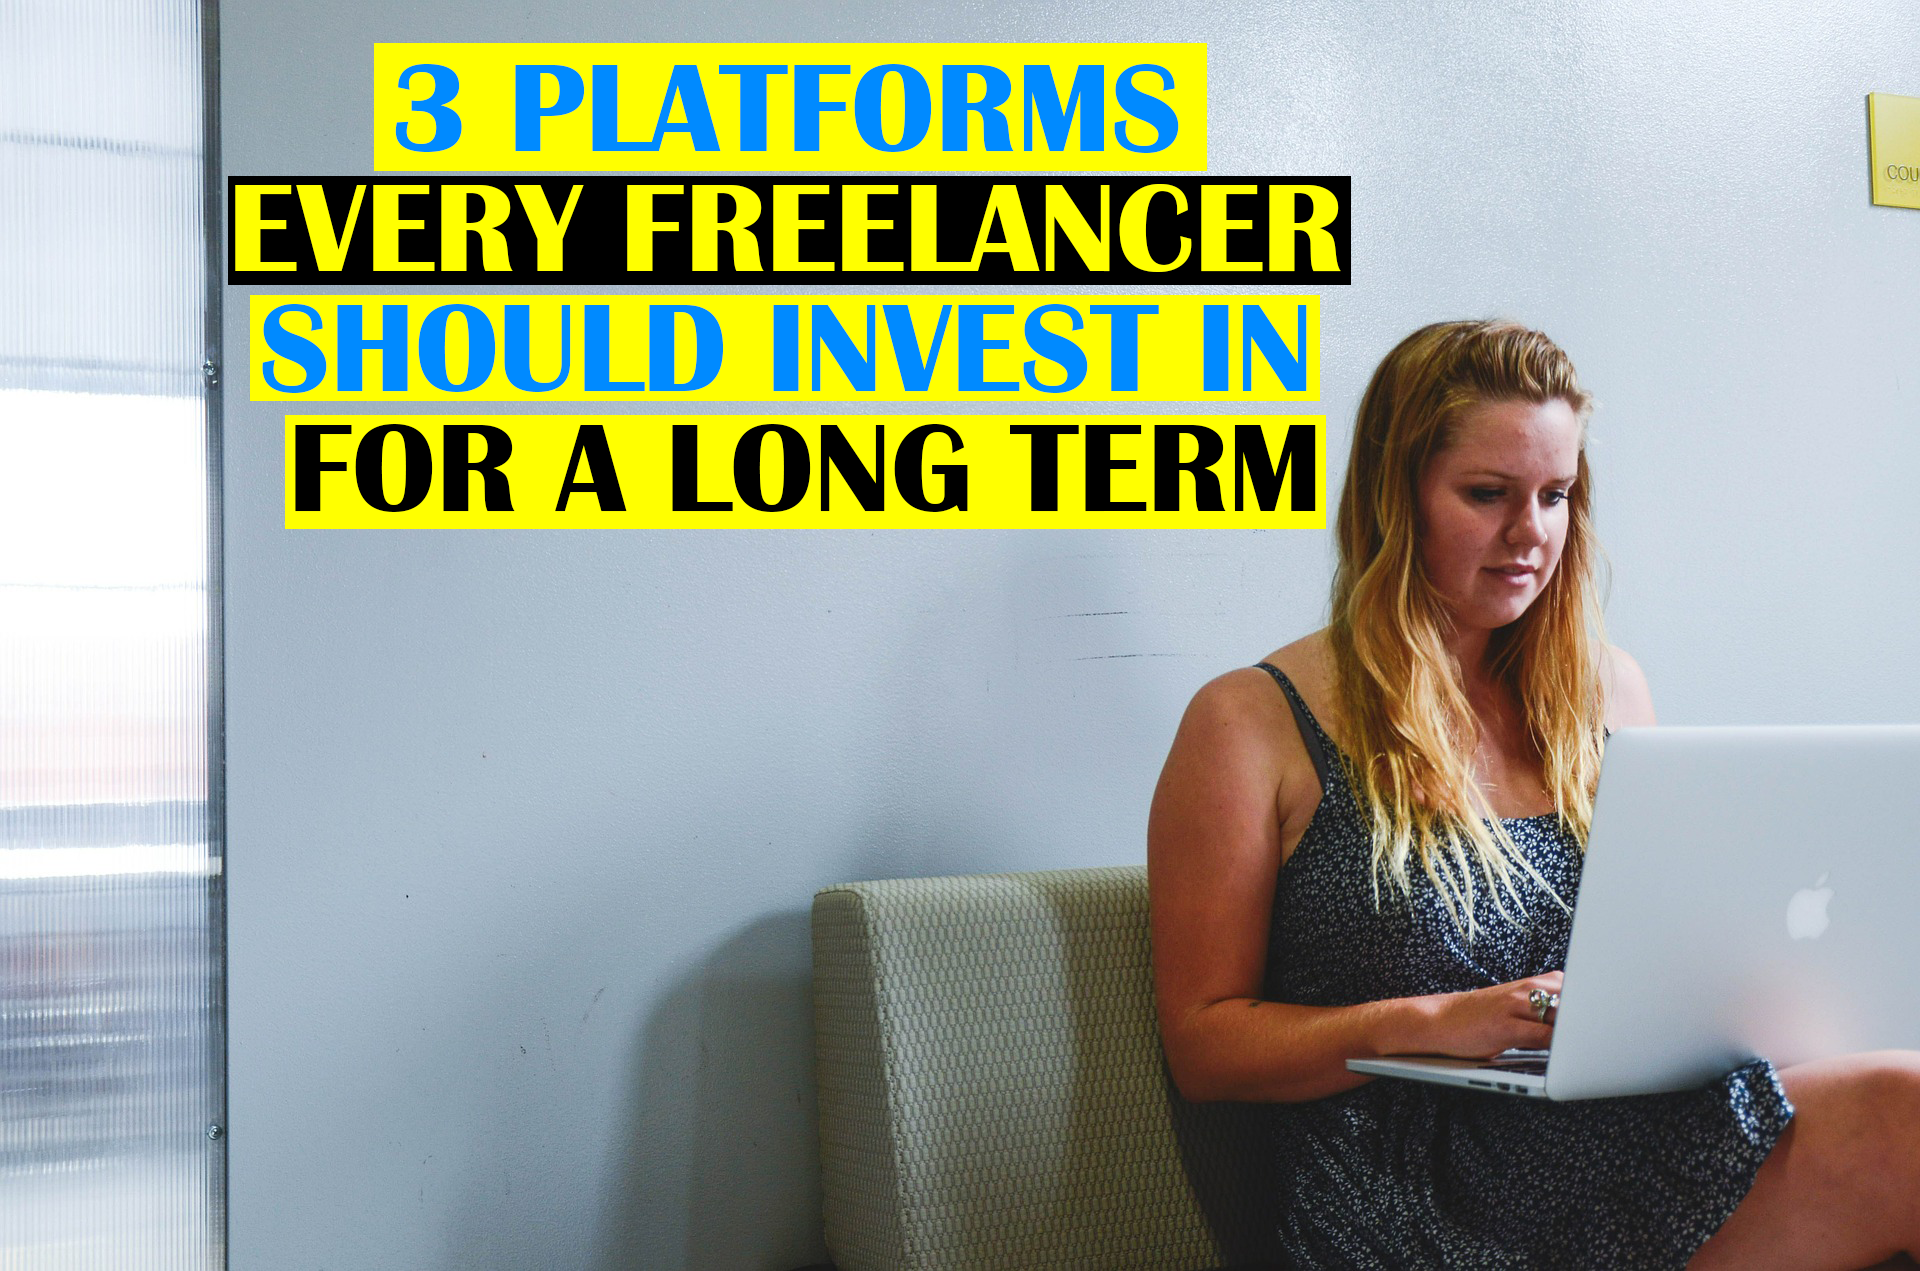 3 Platforms Every Freelancer Should Invest in For a Long Term